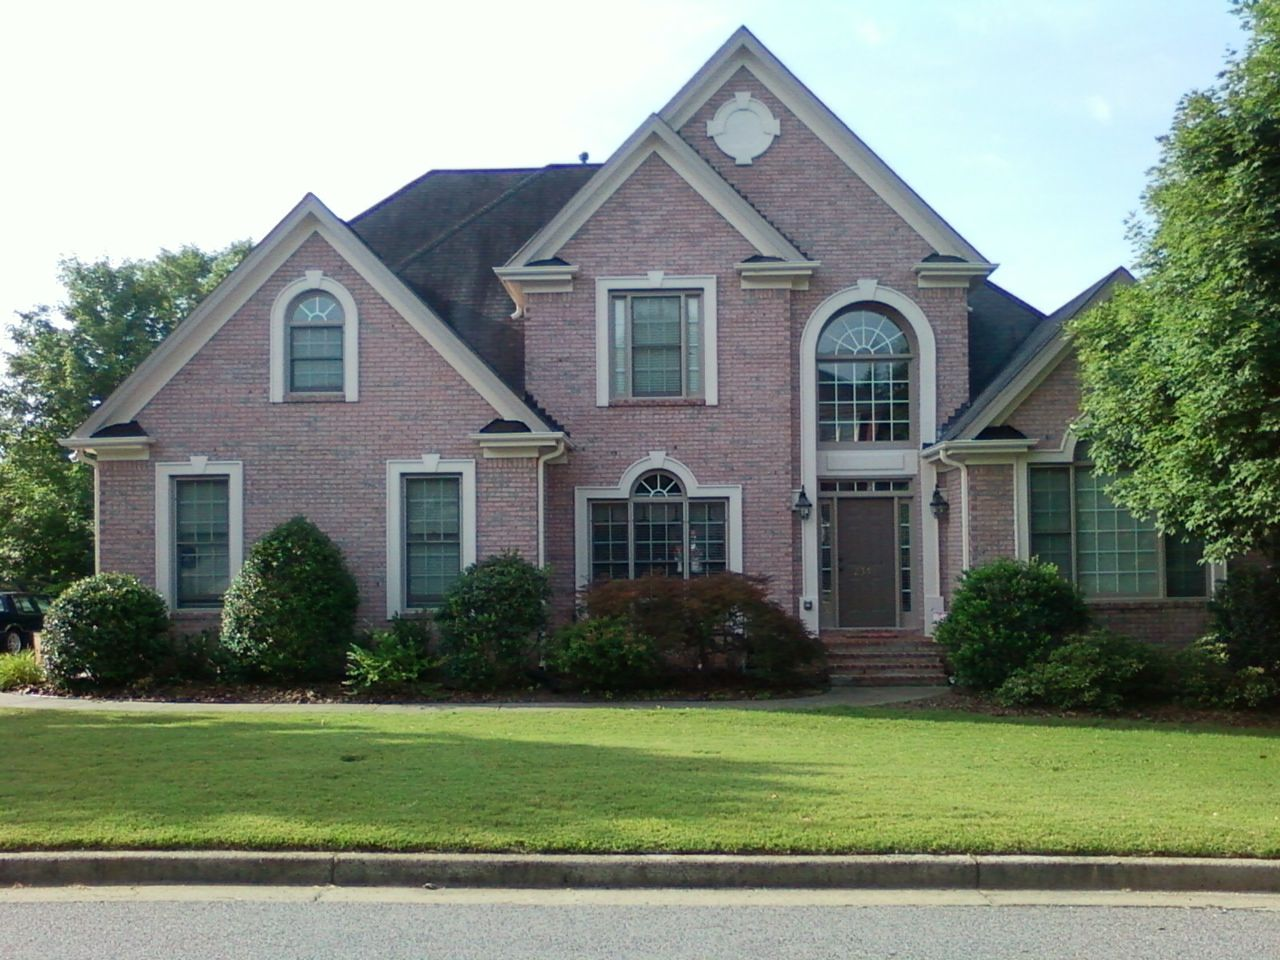 Charming Housing Exteriors | Pink Brick House Exterior | Home Of MC Designs